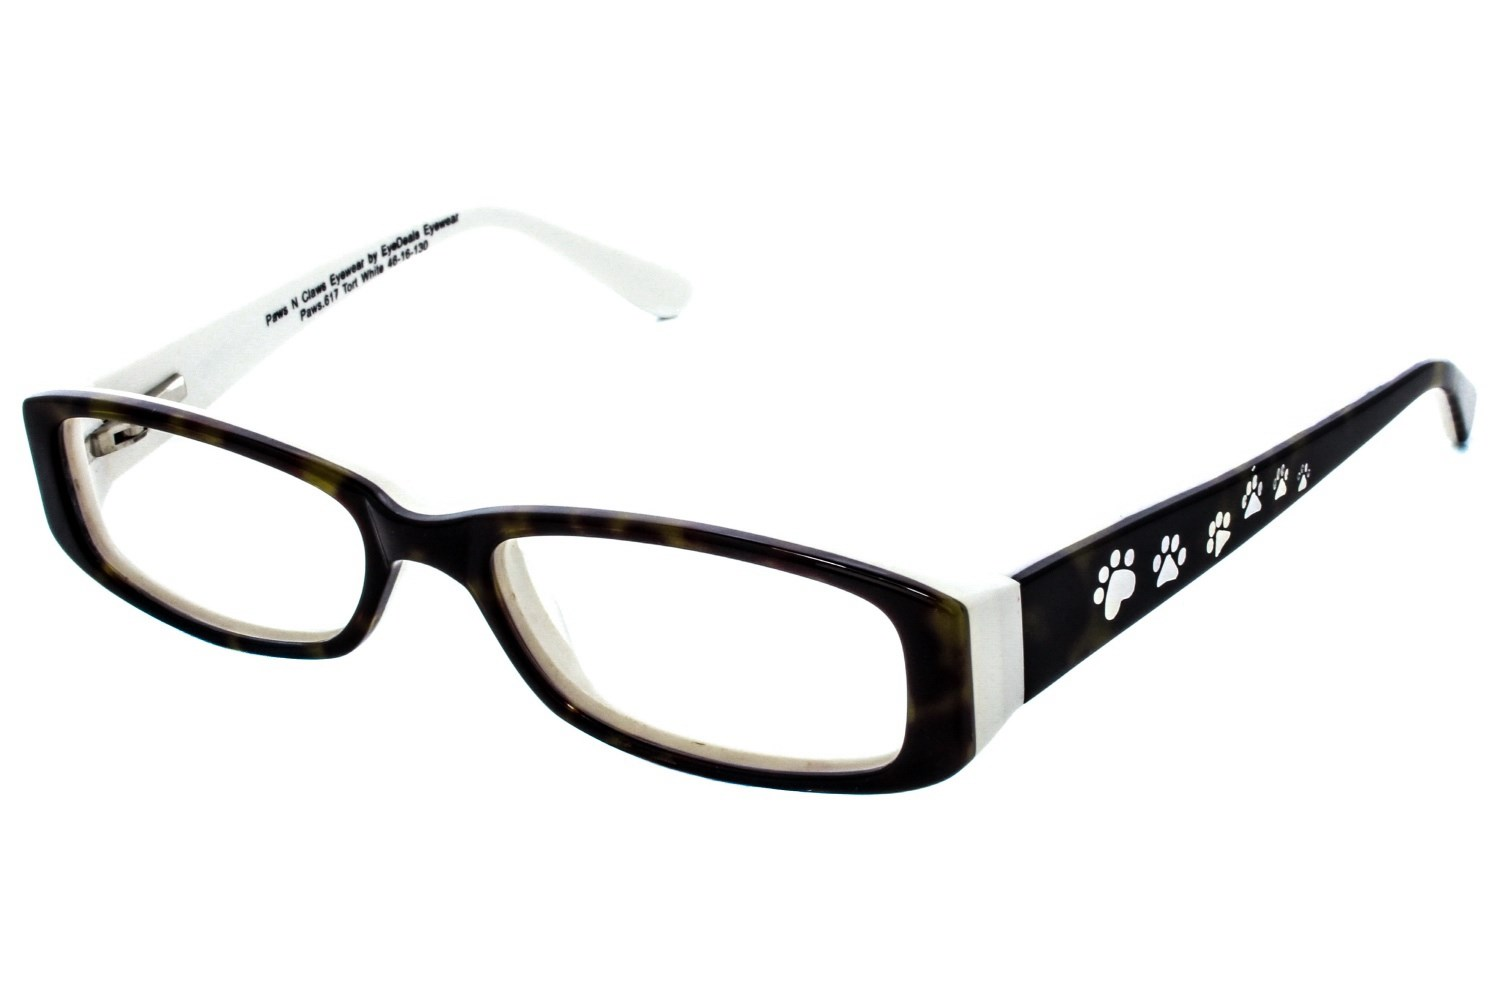 d221b63103c Eyewear glasses and contact lenses superstore Paws n Claws Paws 617 Eyeglasses  Frames